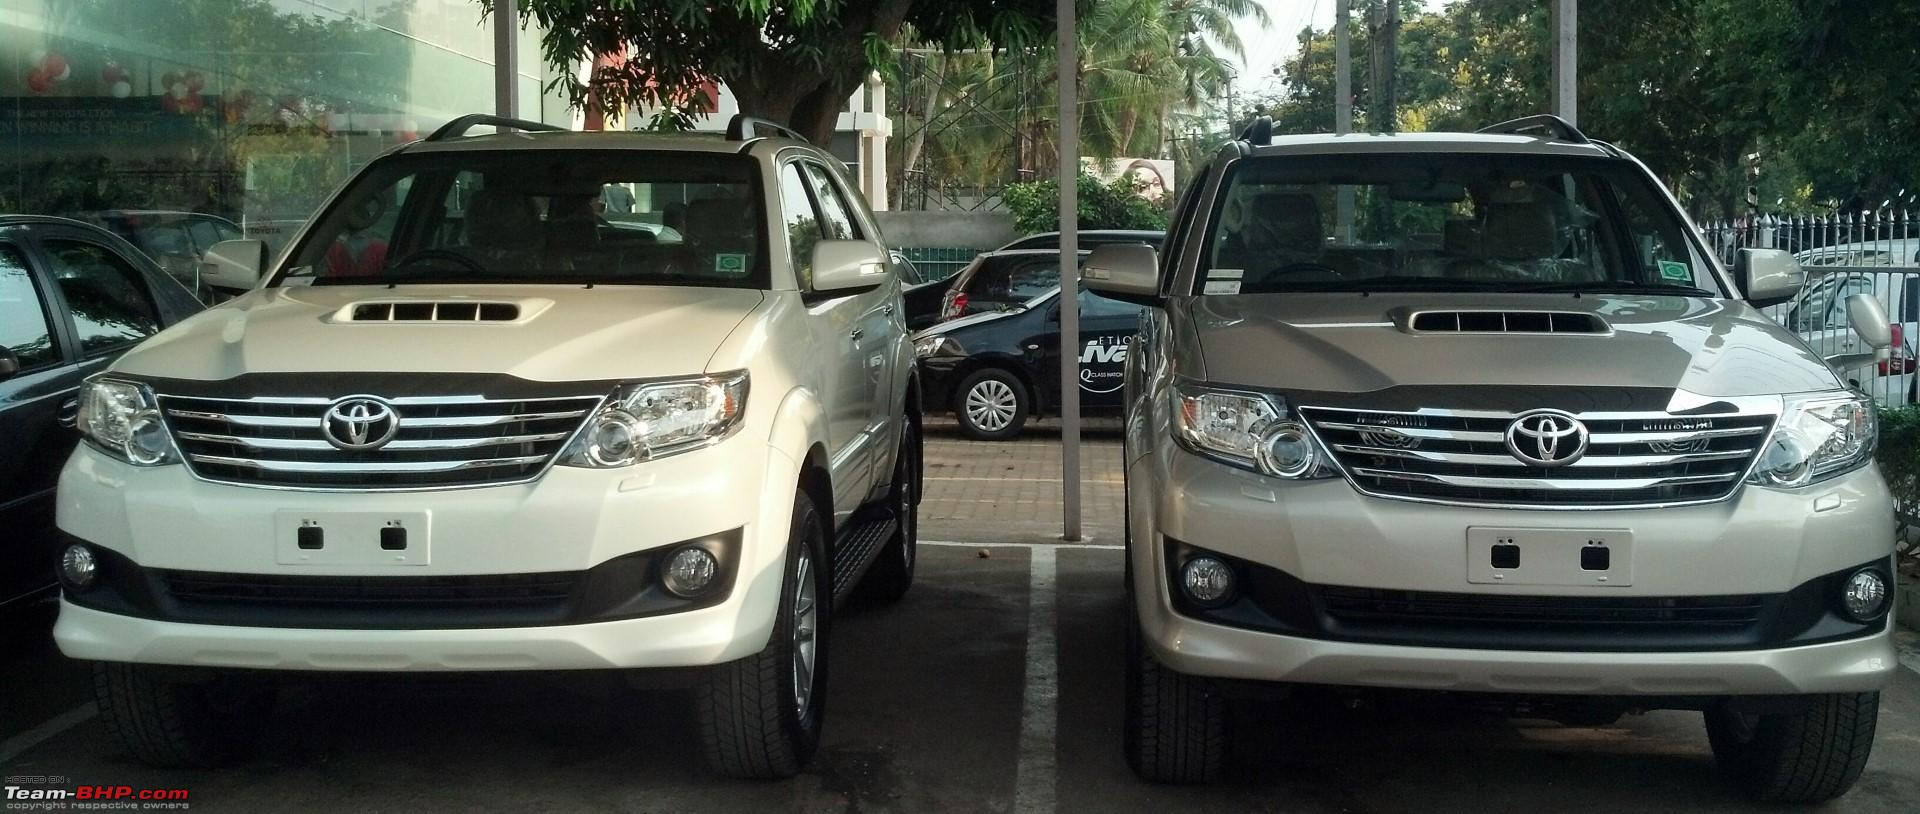 Review 2011 toyota fortuner 4x2 mt at 20130322_165428_5_20130323225214162 large